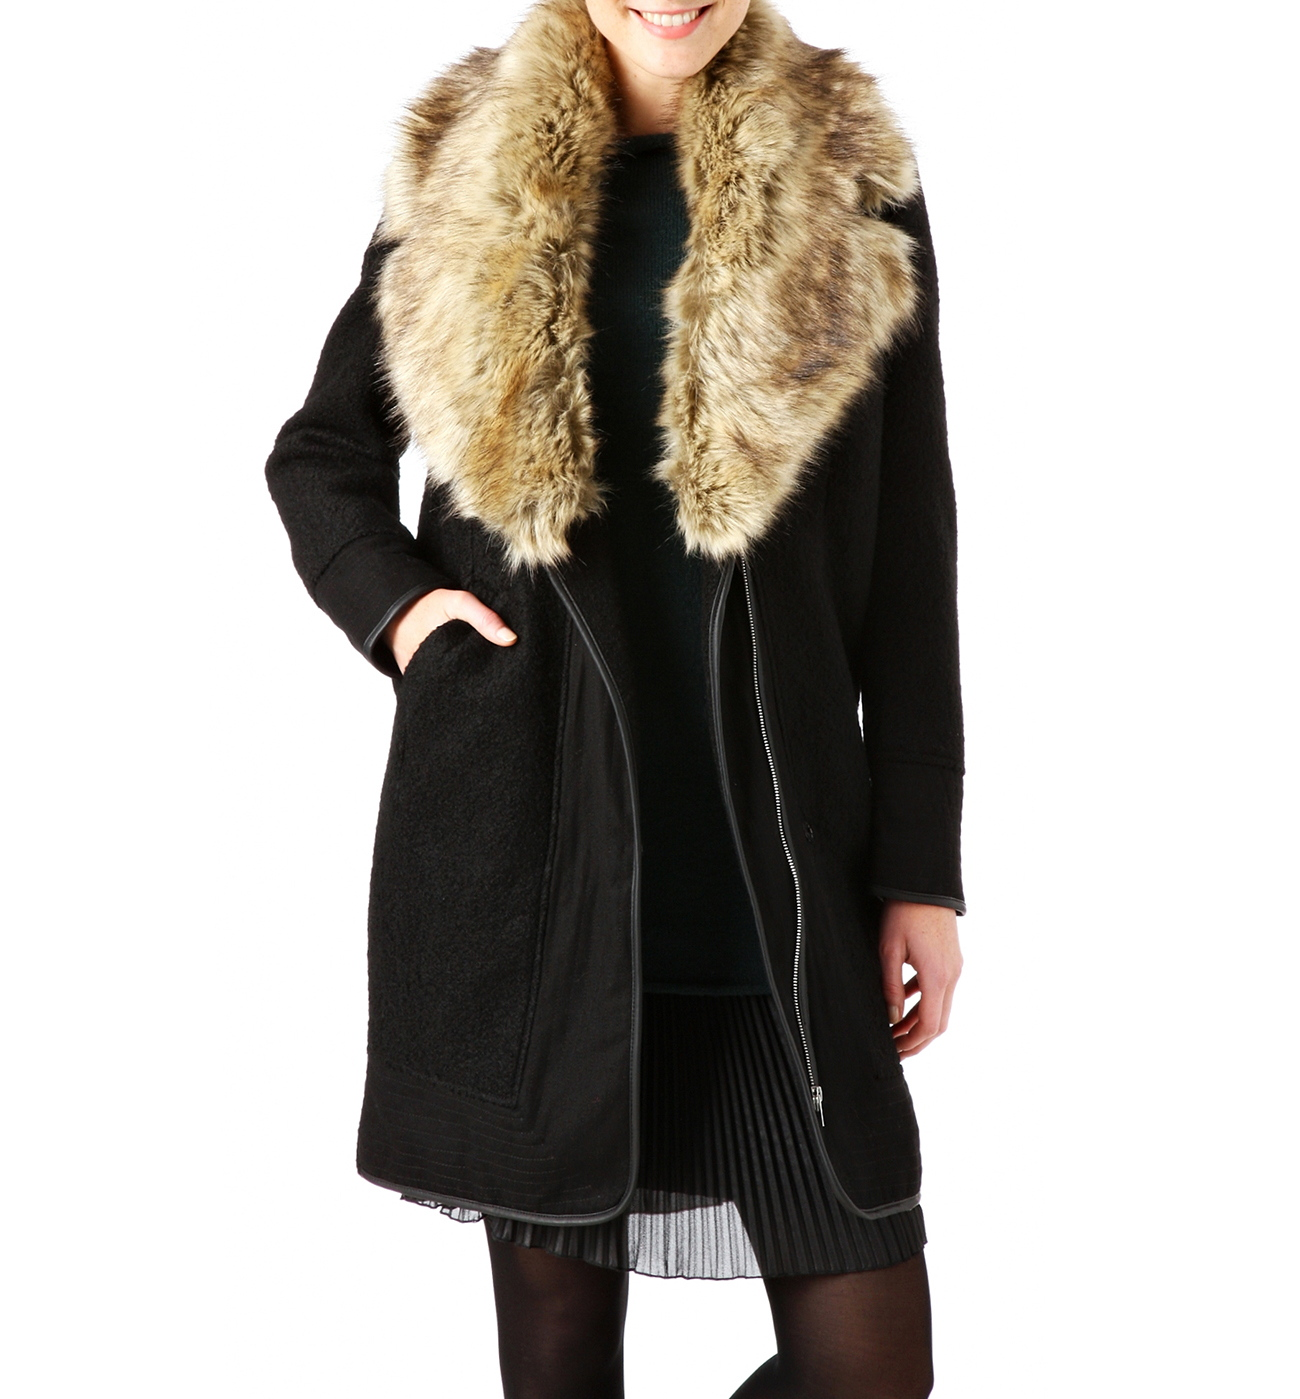 manteau d hiver canada goose a vendre canada goose hats outlet store. Black Bedroom Furniture Sets. Home Design Ideas